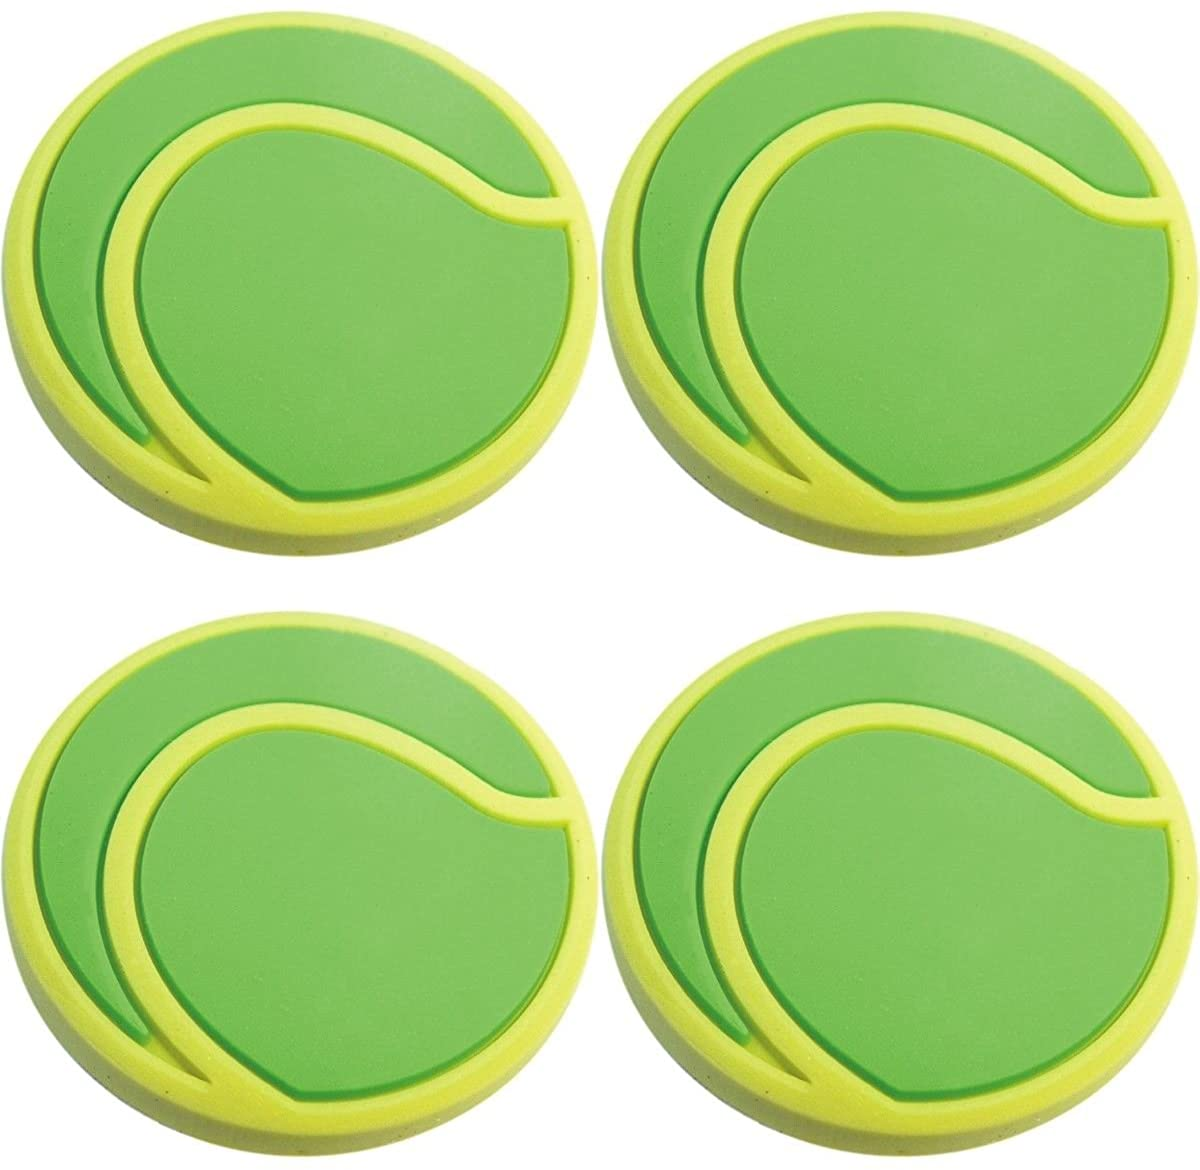 Four (4) of Tennis Ball Rubber Charms for Wristbands and Shoes